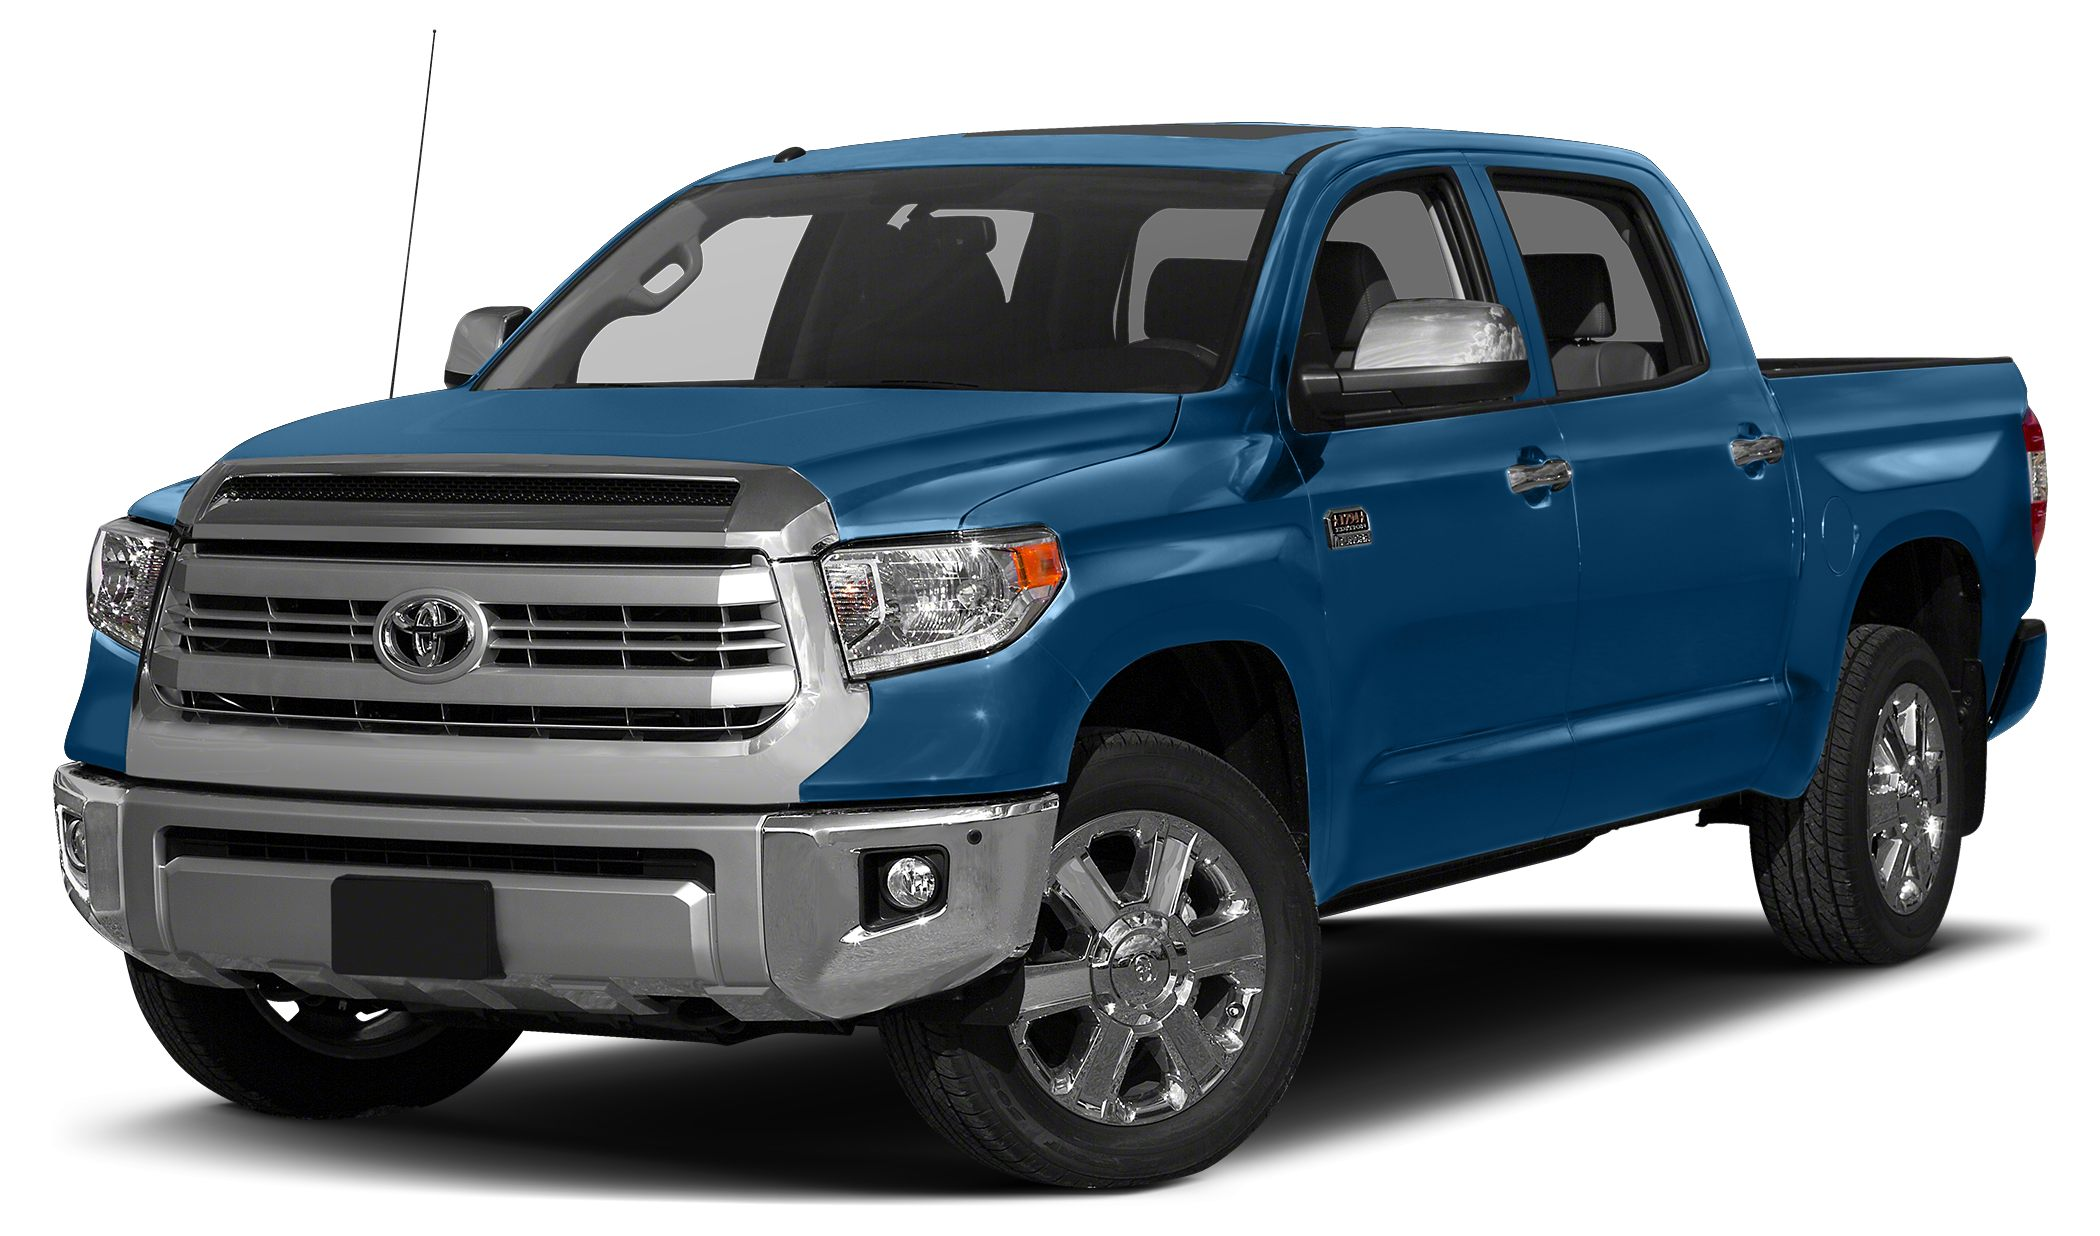 2016 Toyota Tundra 1794 Miles 0Color Blazing Blue Pearl Stock 64428 VIN 5TFAW5F14GX564428